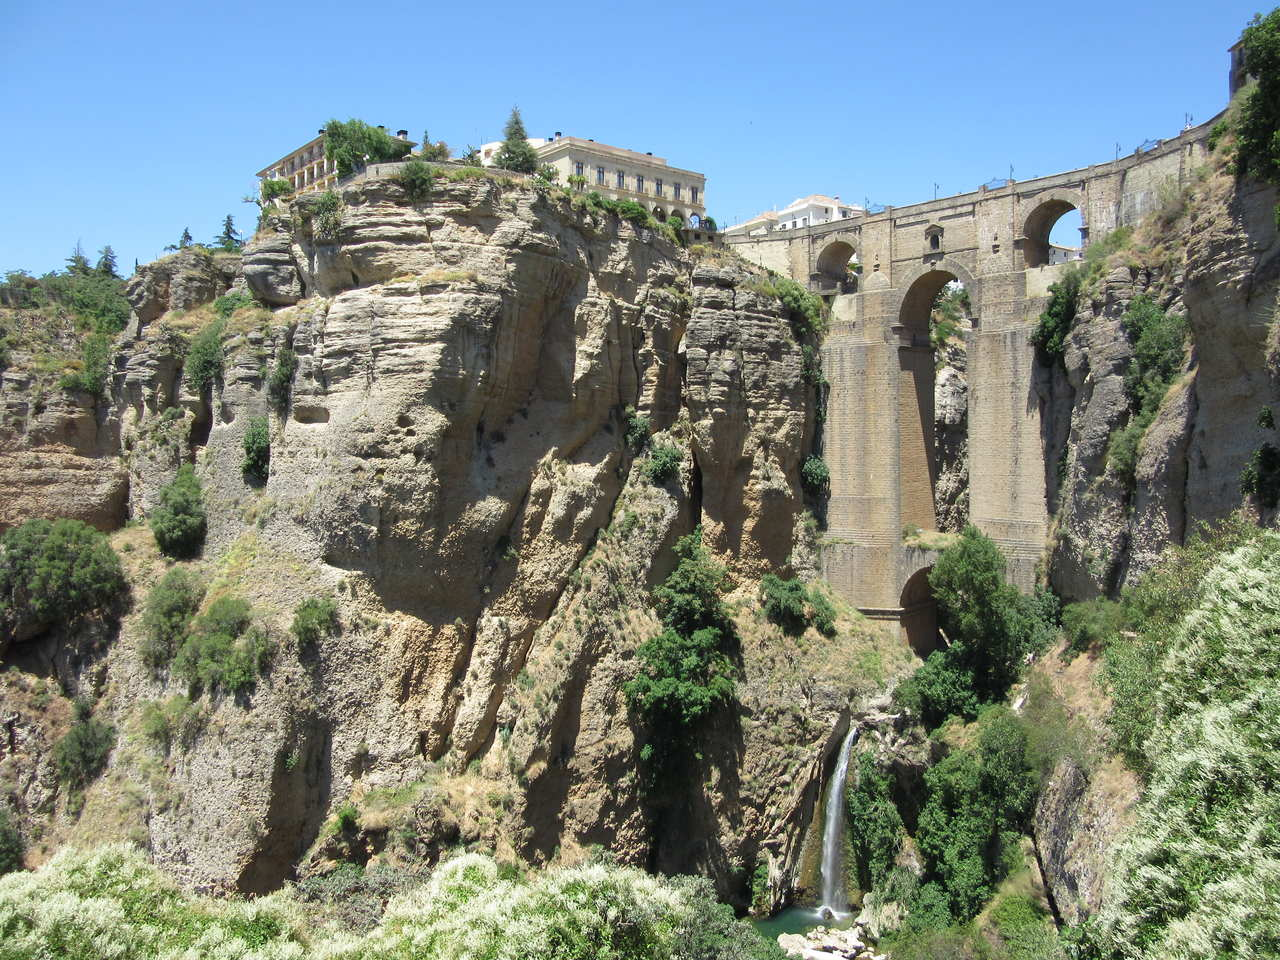 Bridge at Ronda